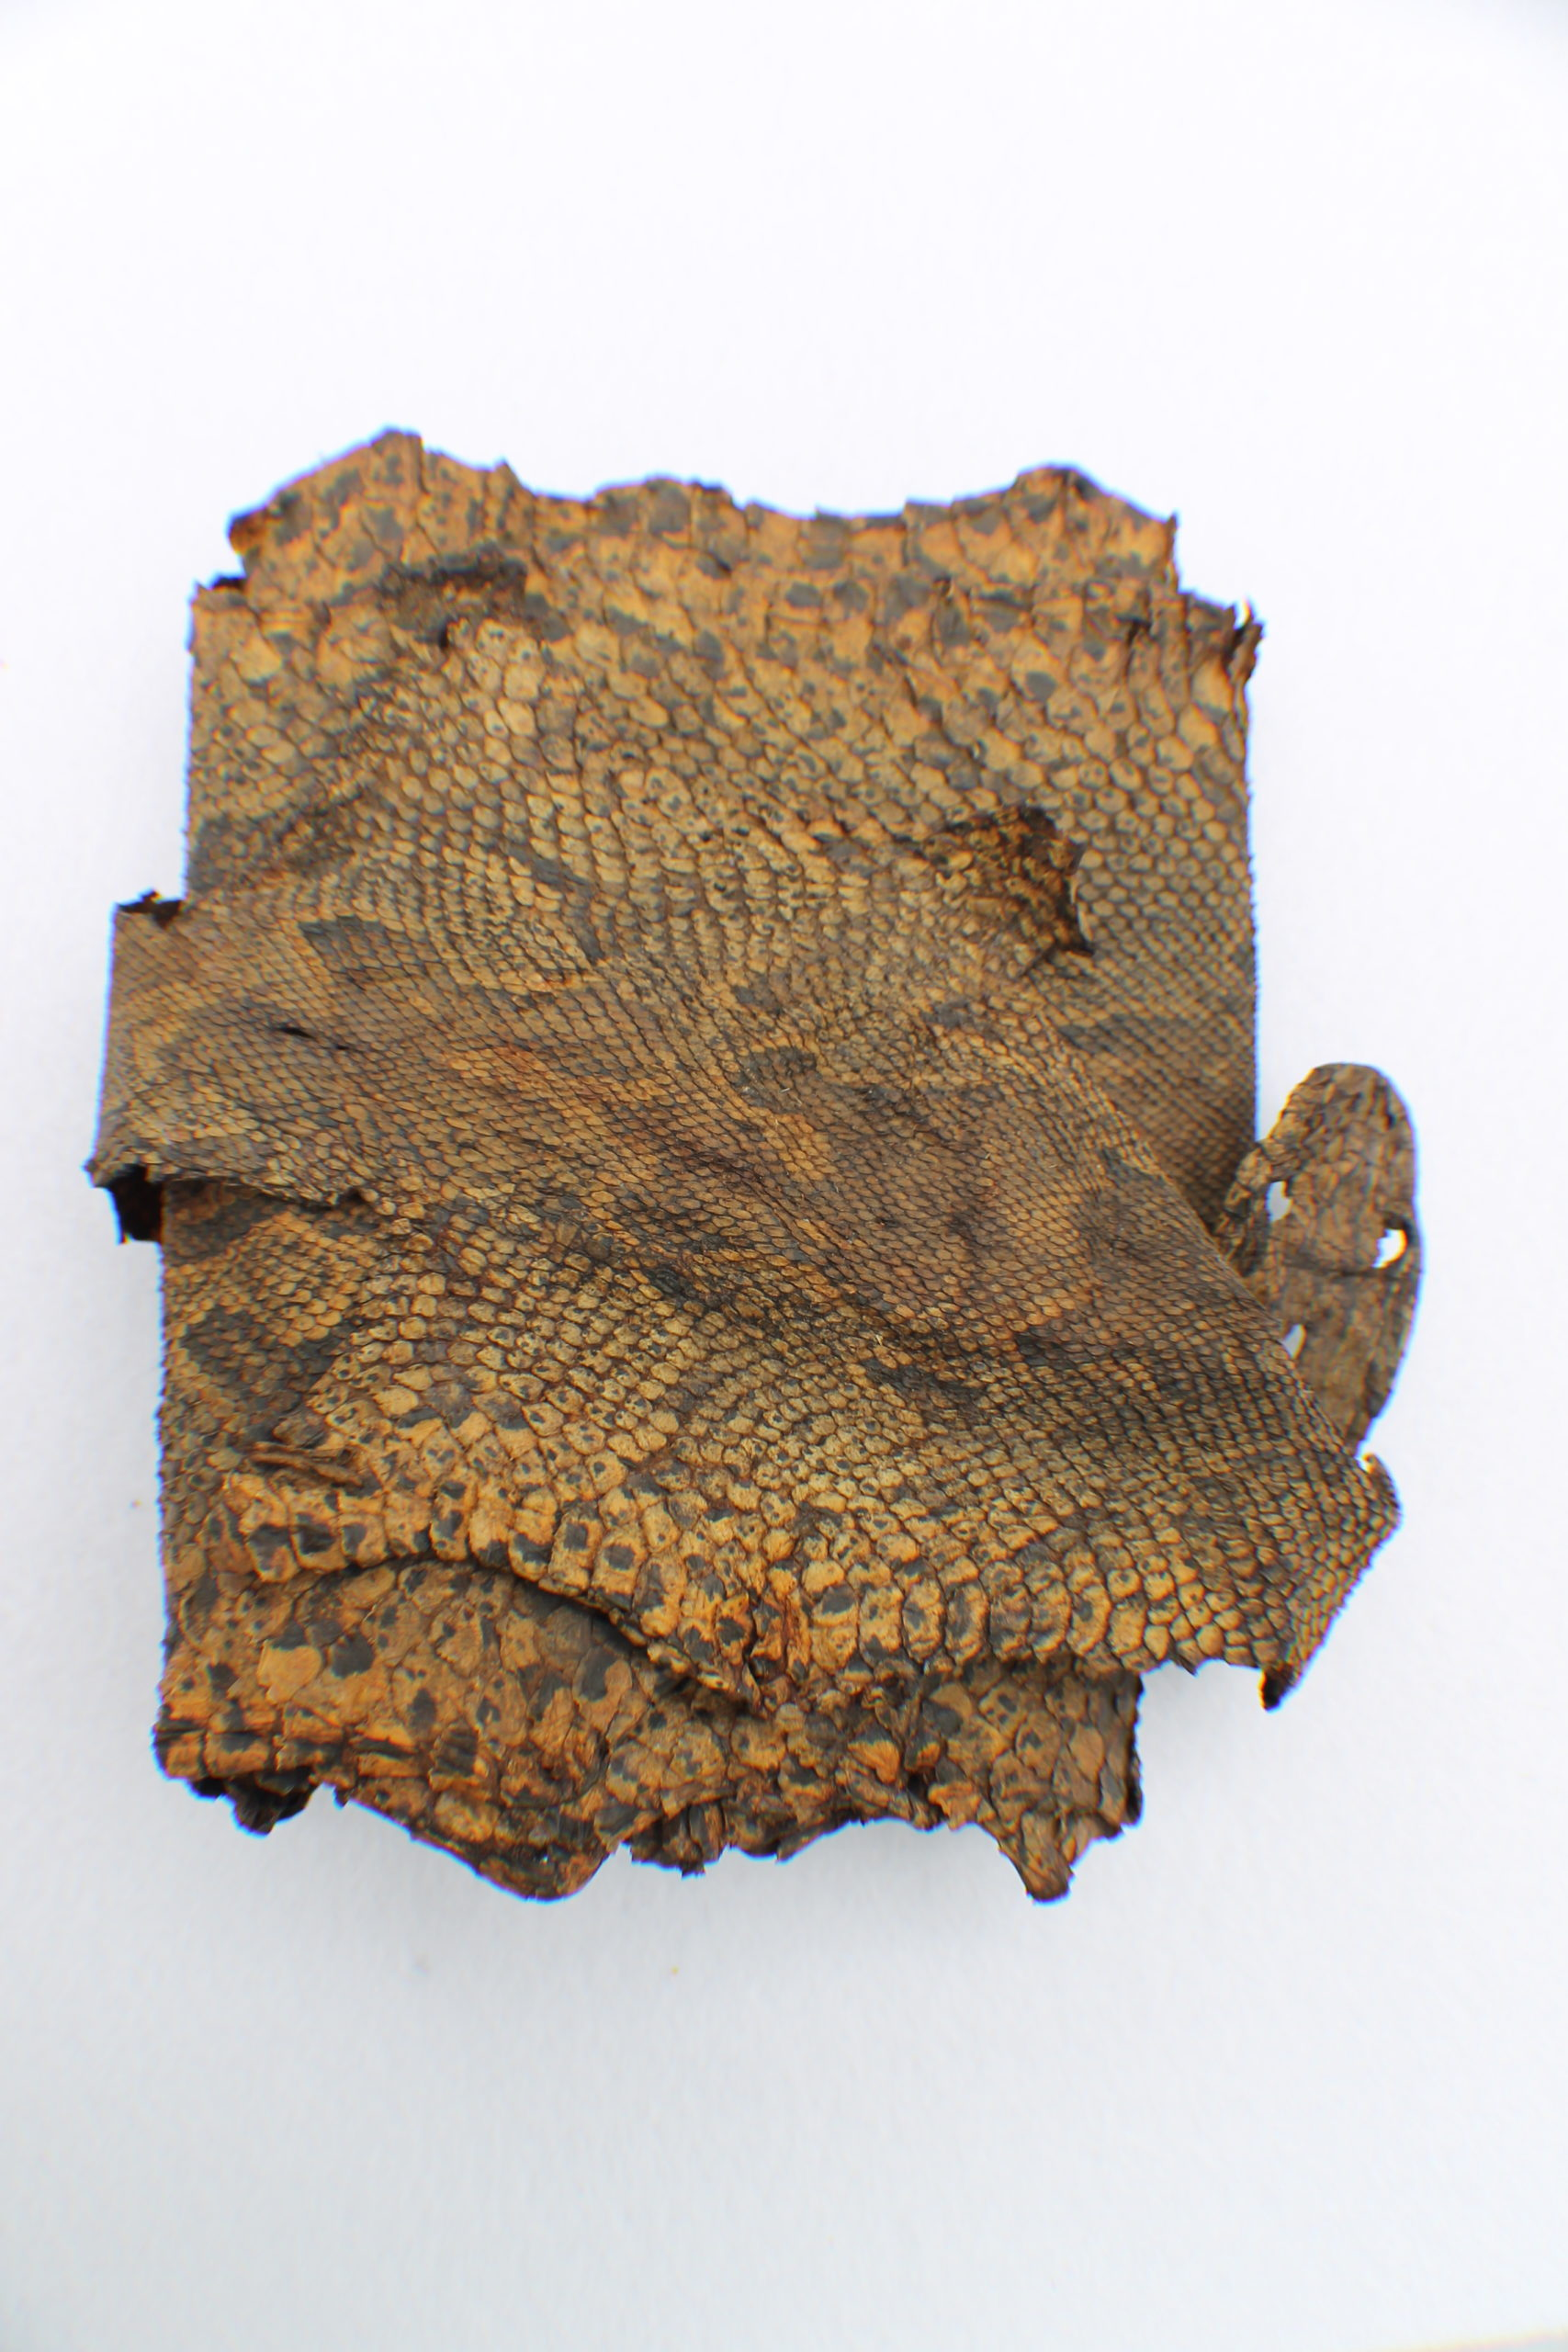 Natural History Fossils to Feathers